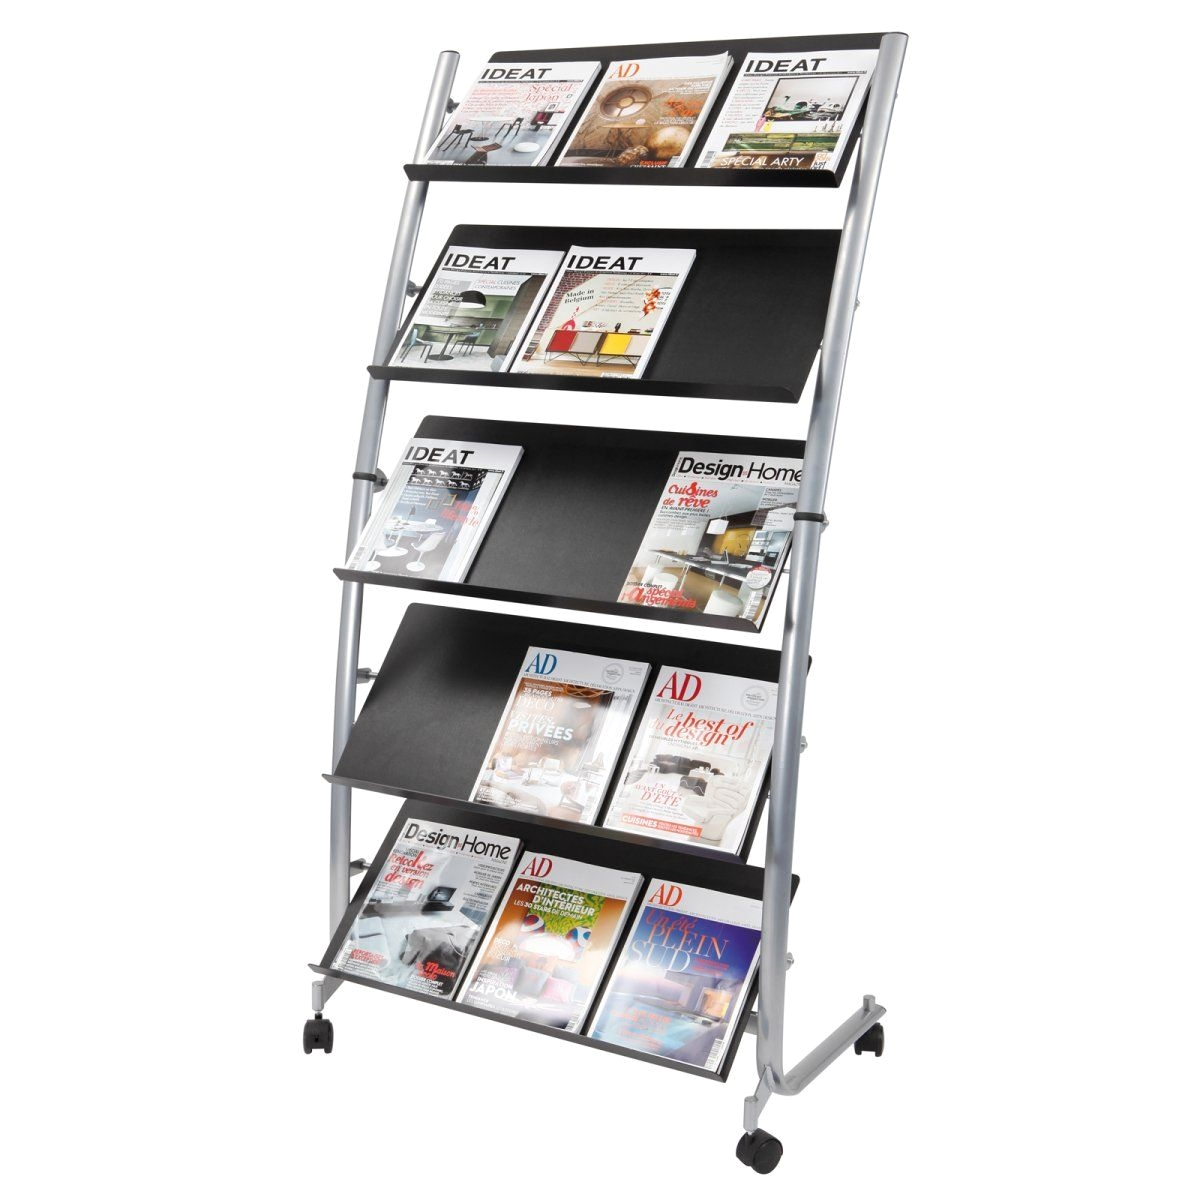 Free Standing Rotating Magazine Rack Alba Large Mobile Literature Display 5 Levels Work tools Pinterest